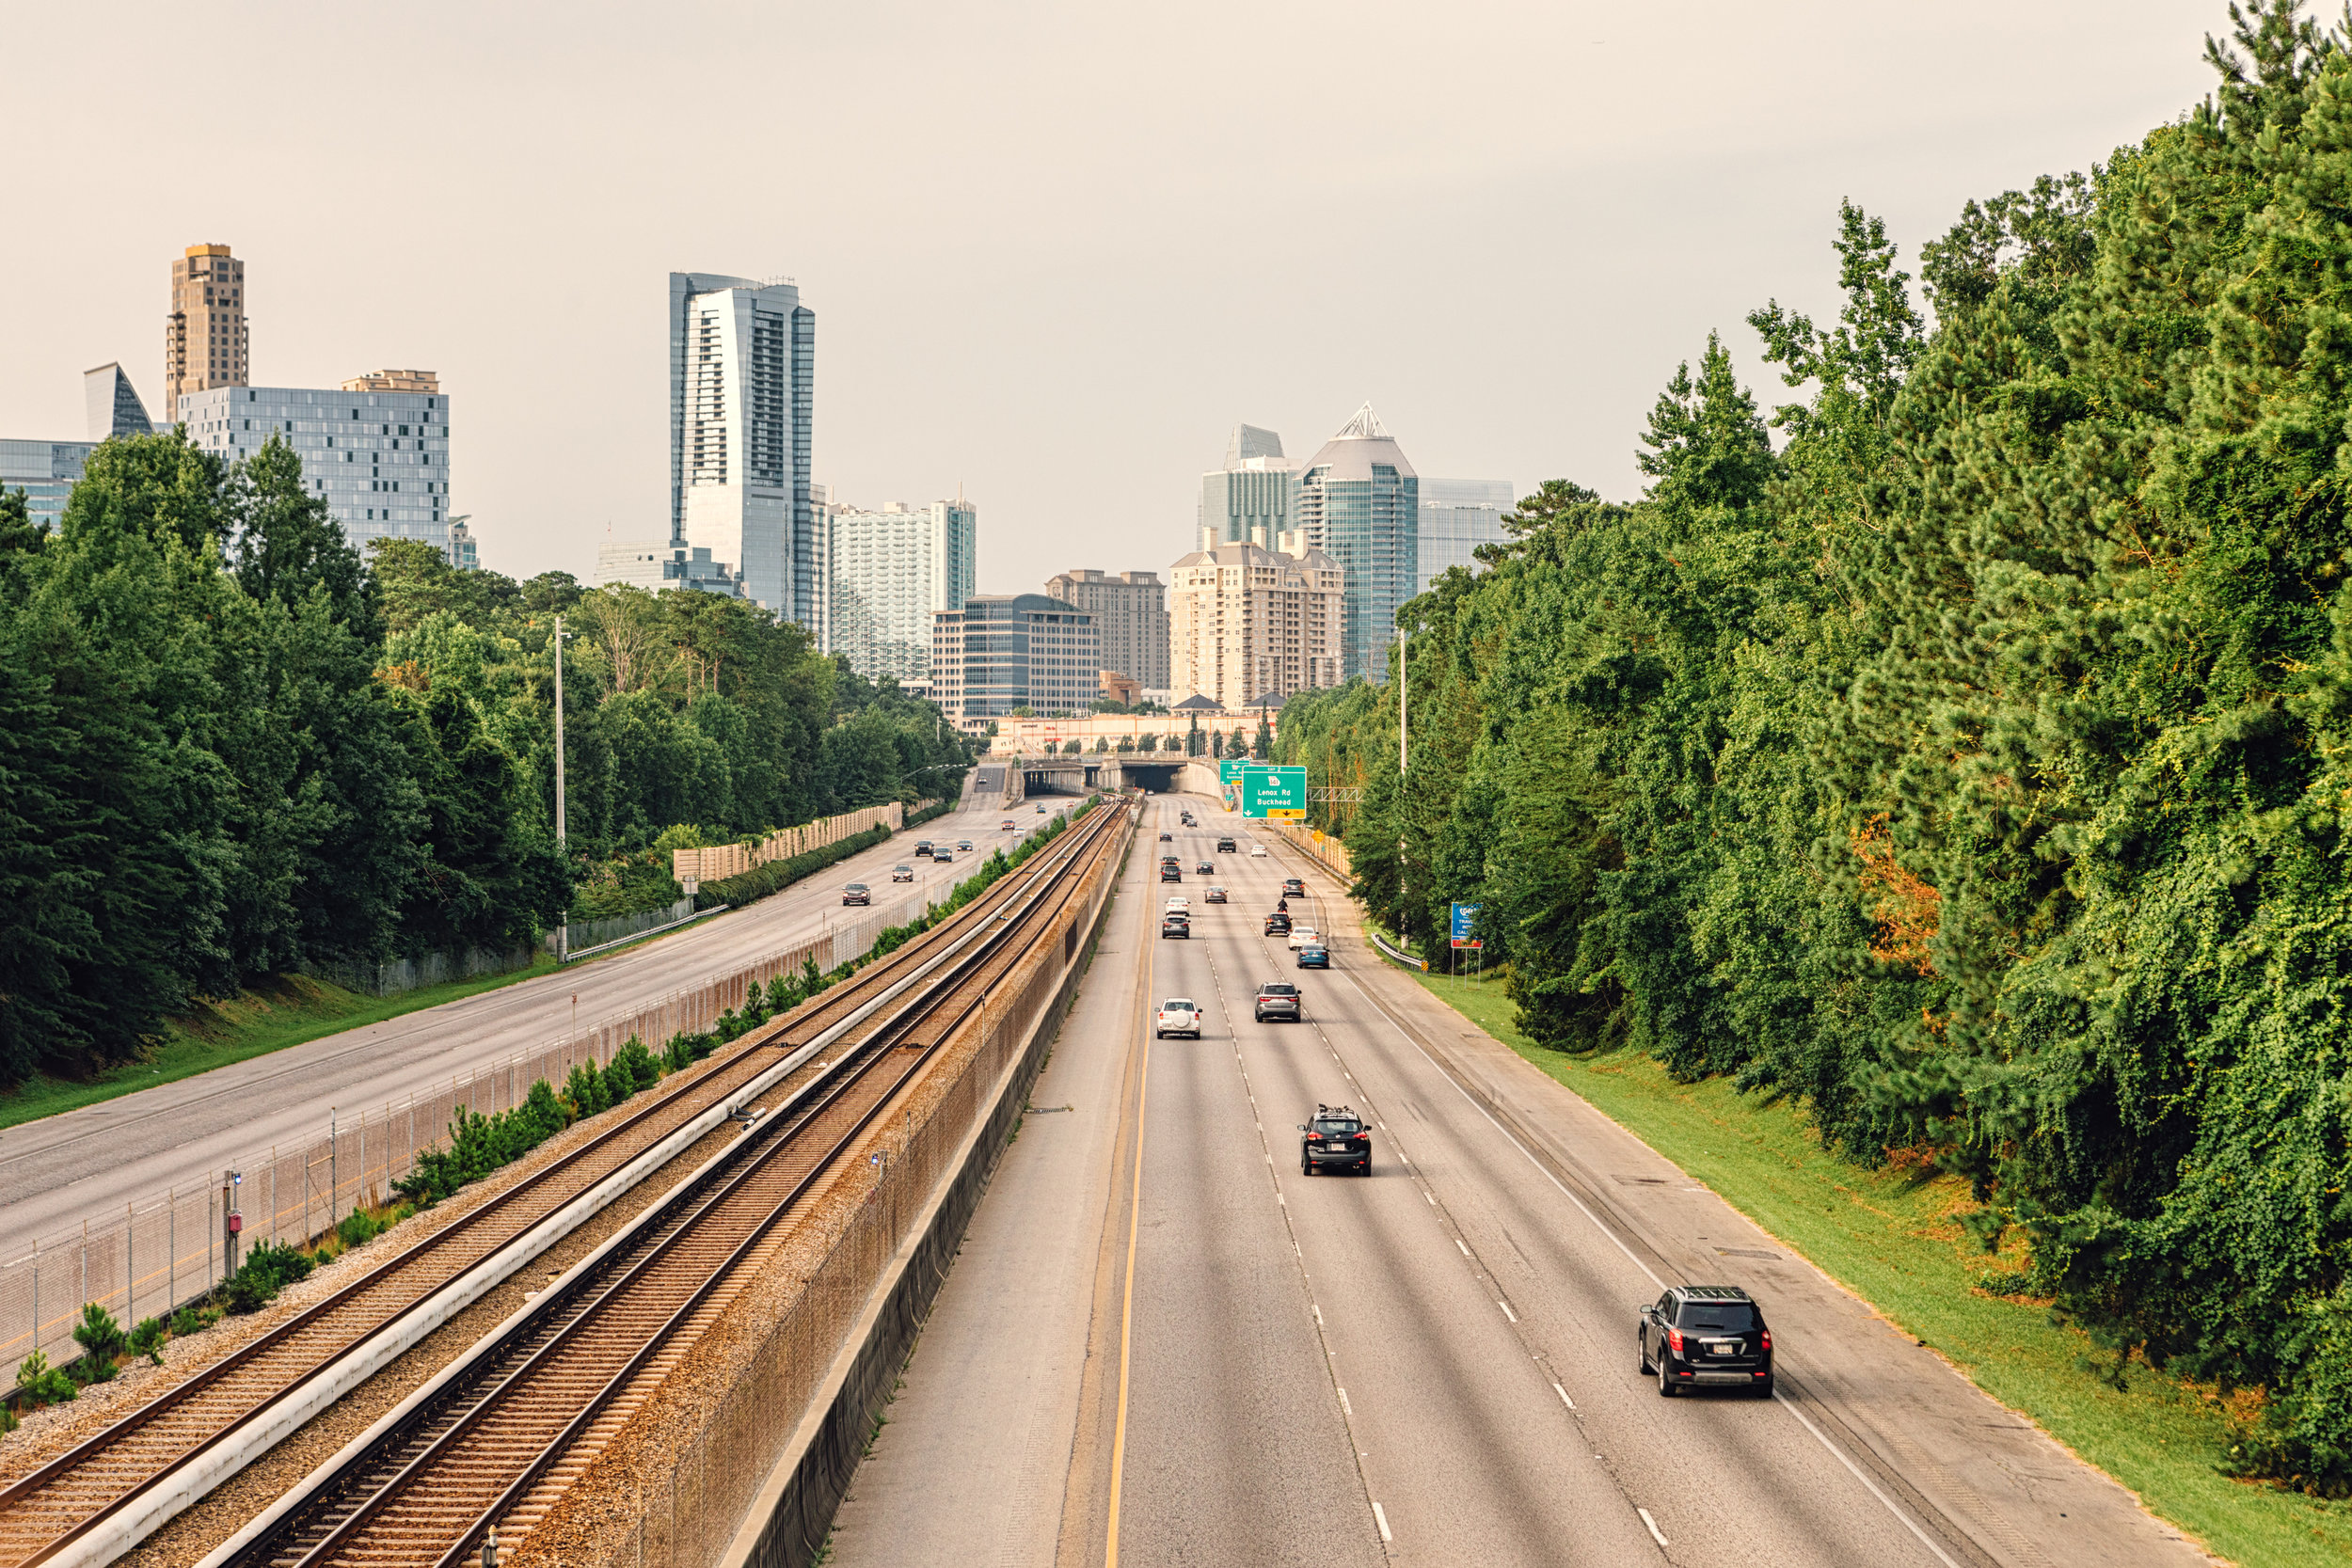 Atlanta - Commonly known as an air travel hub, the Atlanta intermodal market is actually growing as well. We haul from rail yards such as NS Inman & Austell, as well as CSX Fairburn, and Atlanta is close to both Tennessee and Alabama so drayage can go out there too.